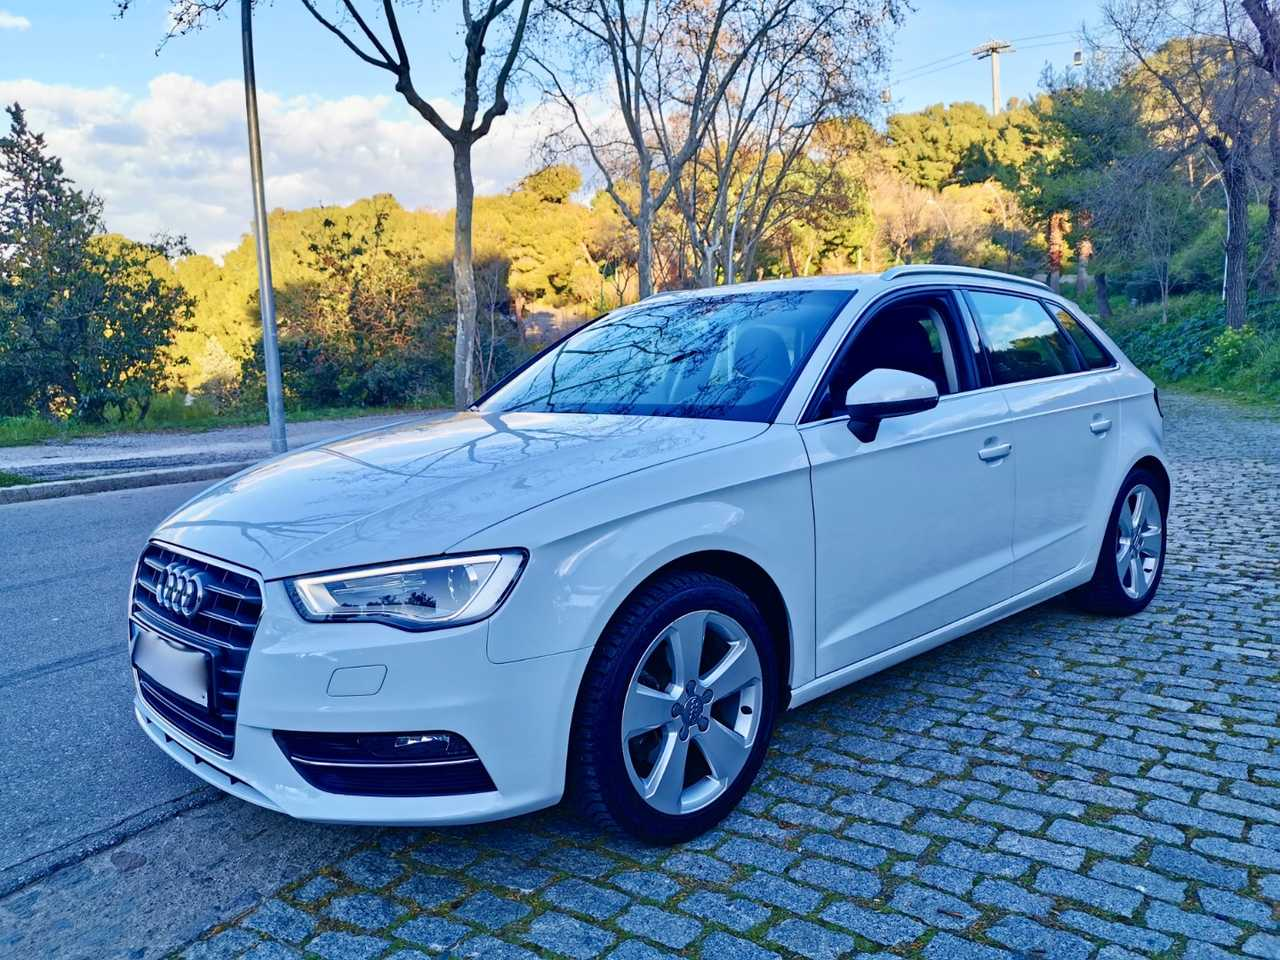 Audi A3 1.6 Tdi 110cv. Absolutamente impecable.   - Foto 1